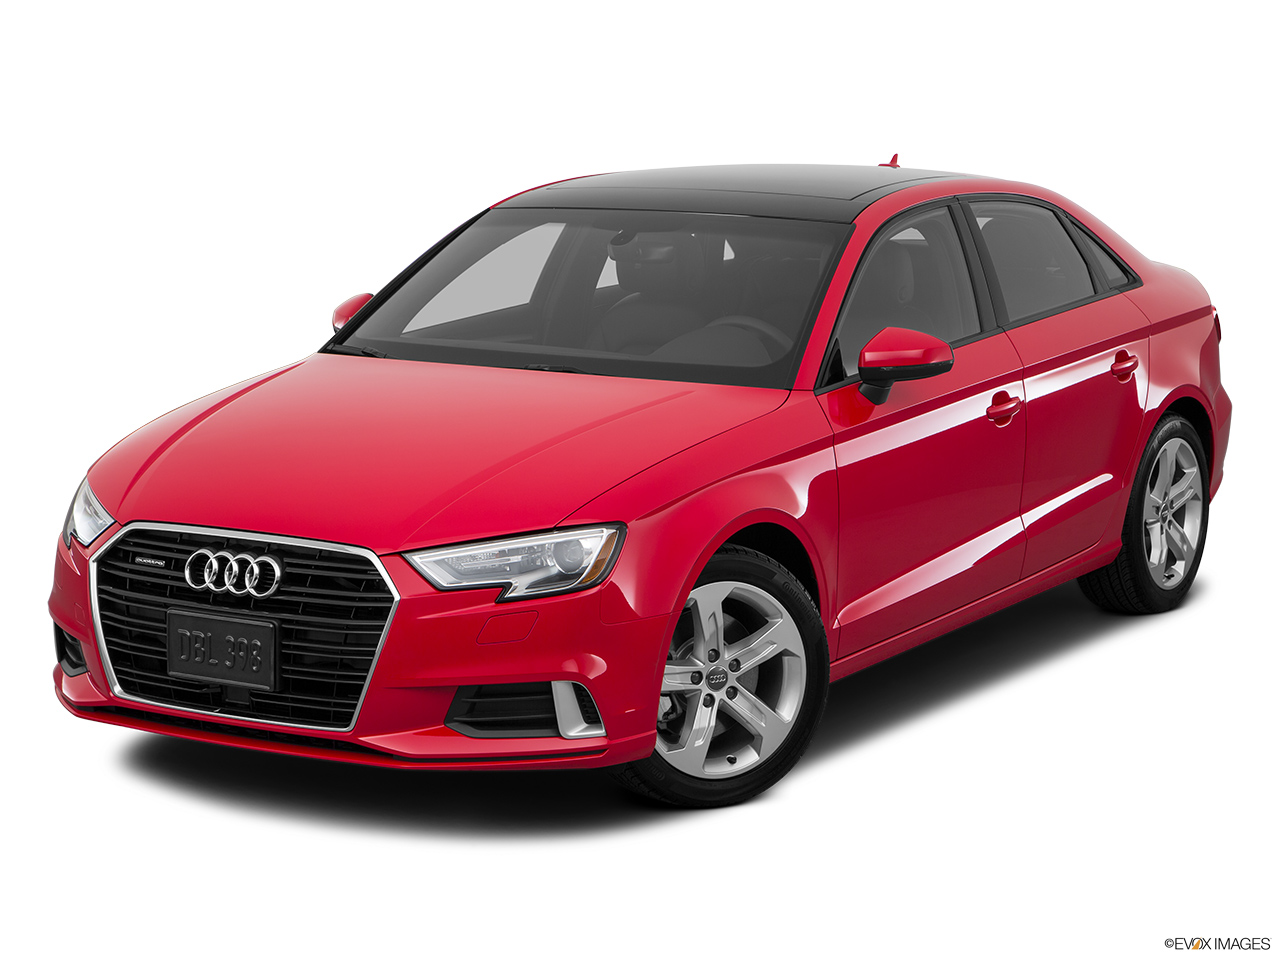 Audi A Sedan Prices In UAE Gulf Specs Reviews For Dubai - Audi image and price